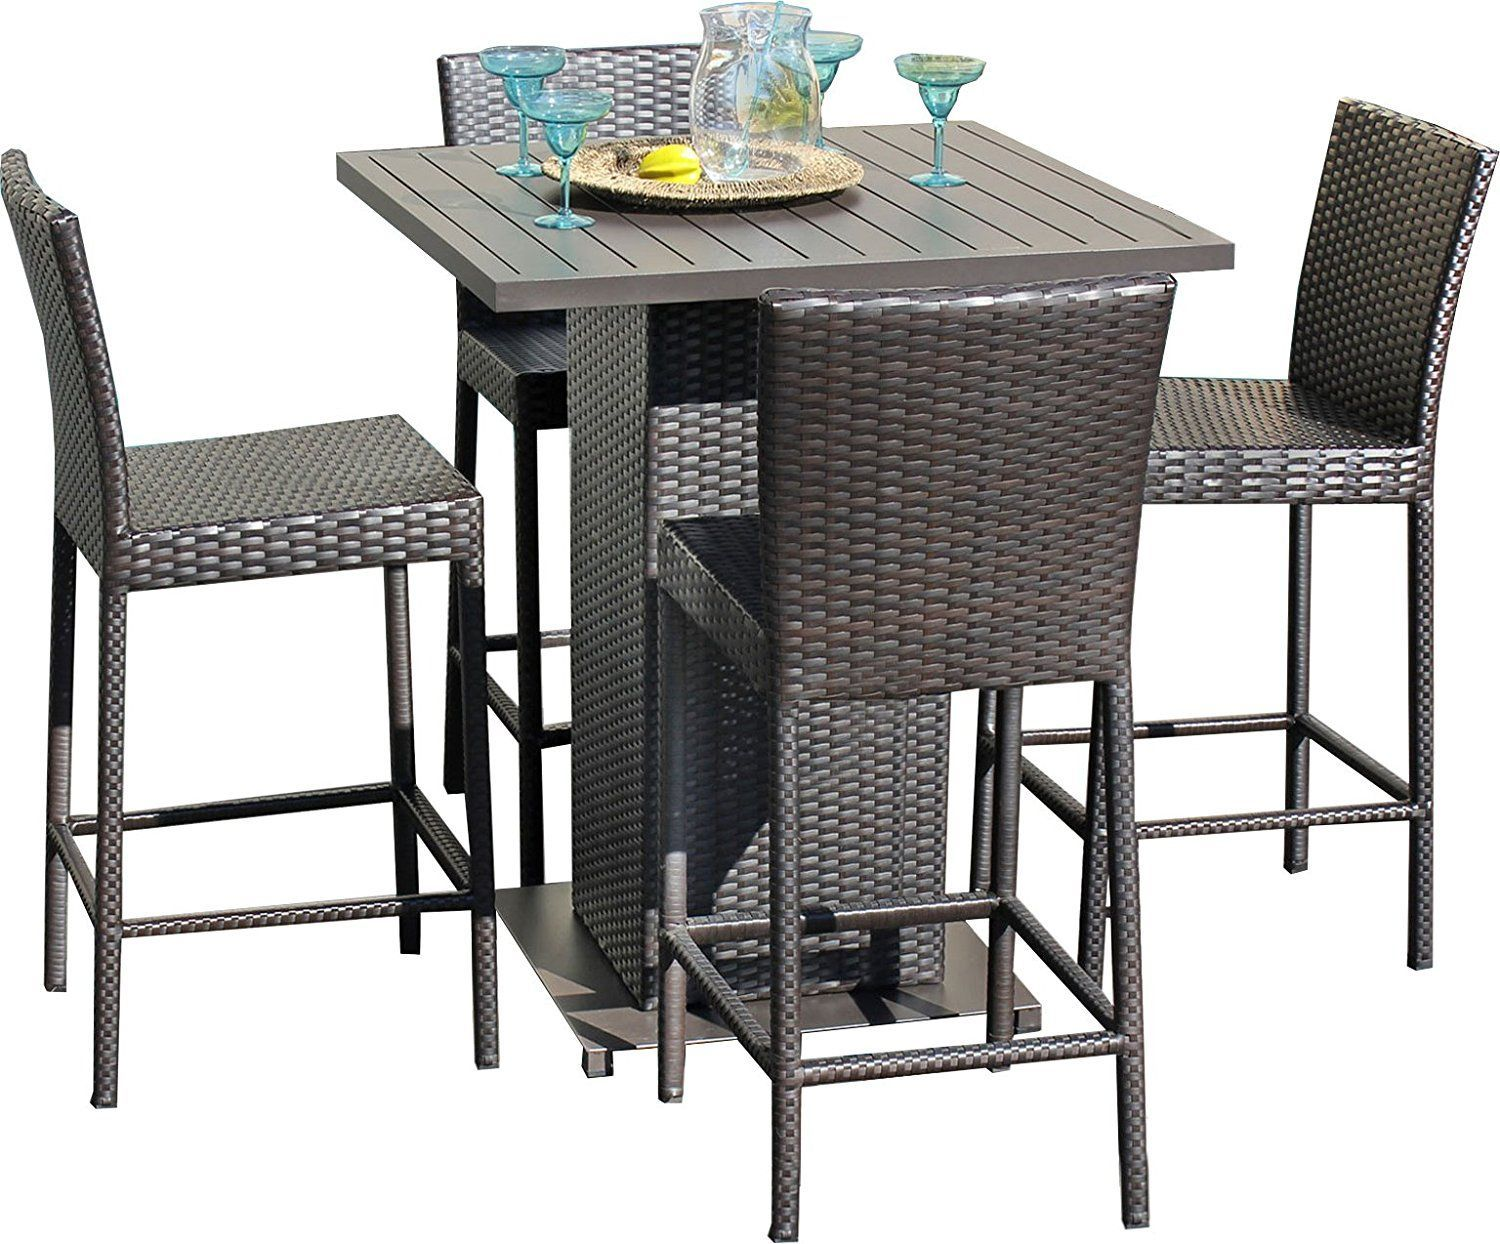 Napa Pub High Top Barstool Wicker Dining Set Outdoor Pub Table